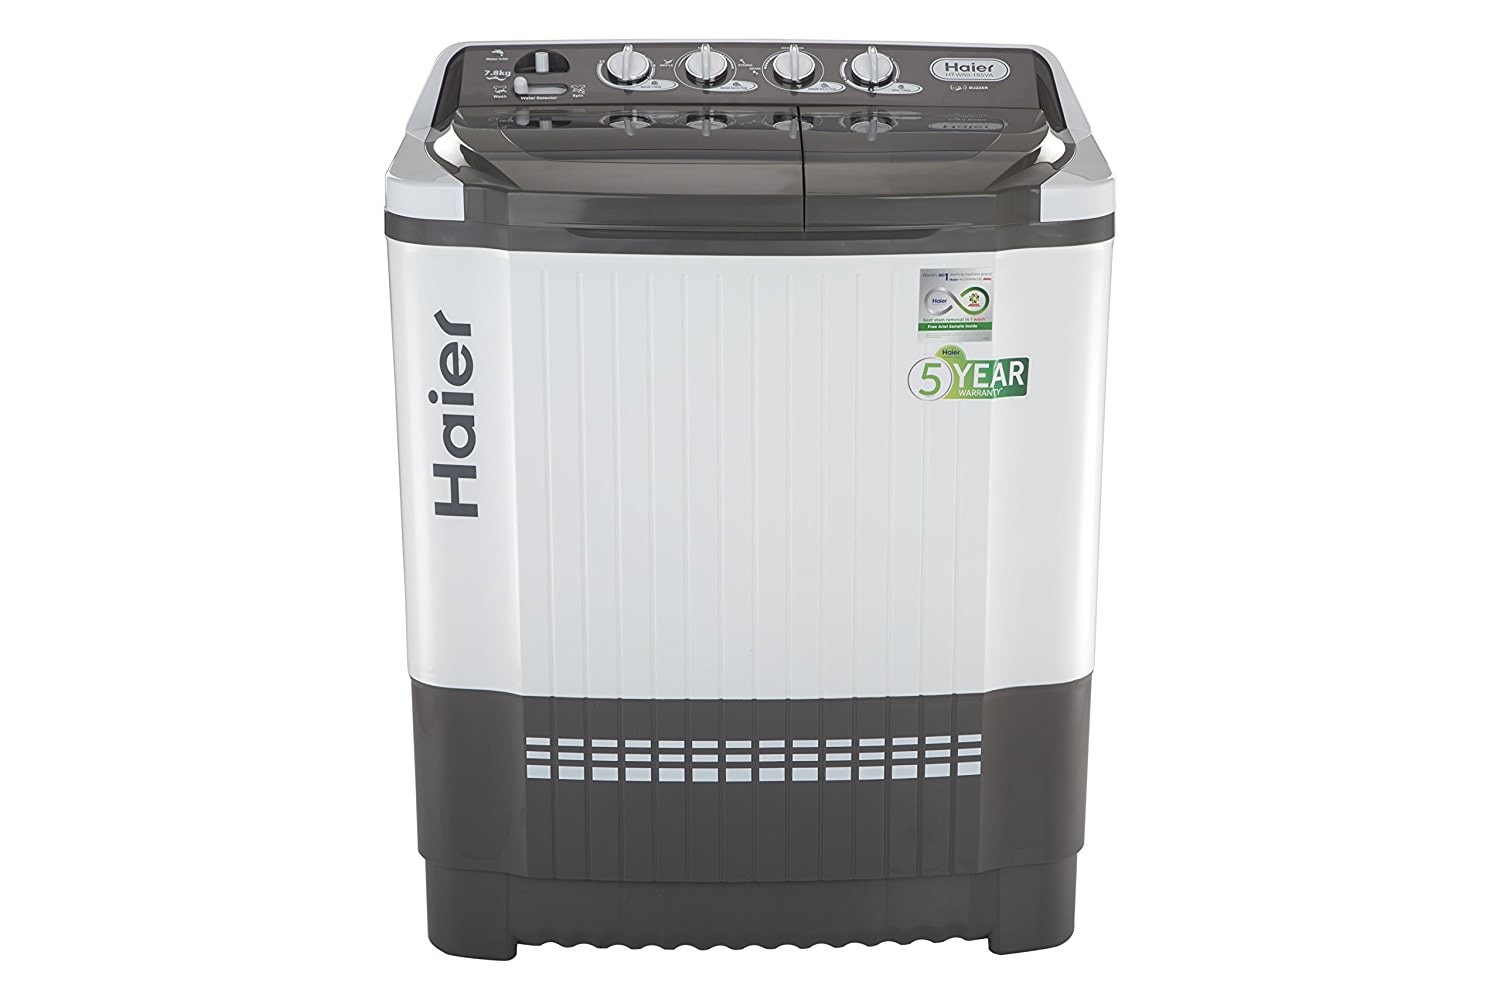 Haier 7.8 kg Semi Automatic Top Load Washing Machine (HTW80-185VA, Grey & White)